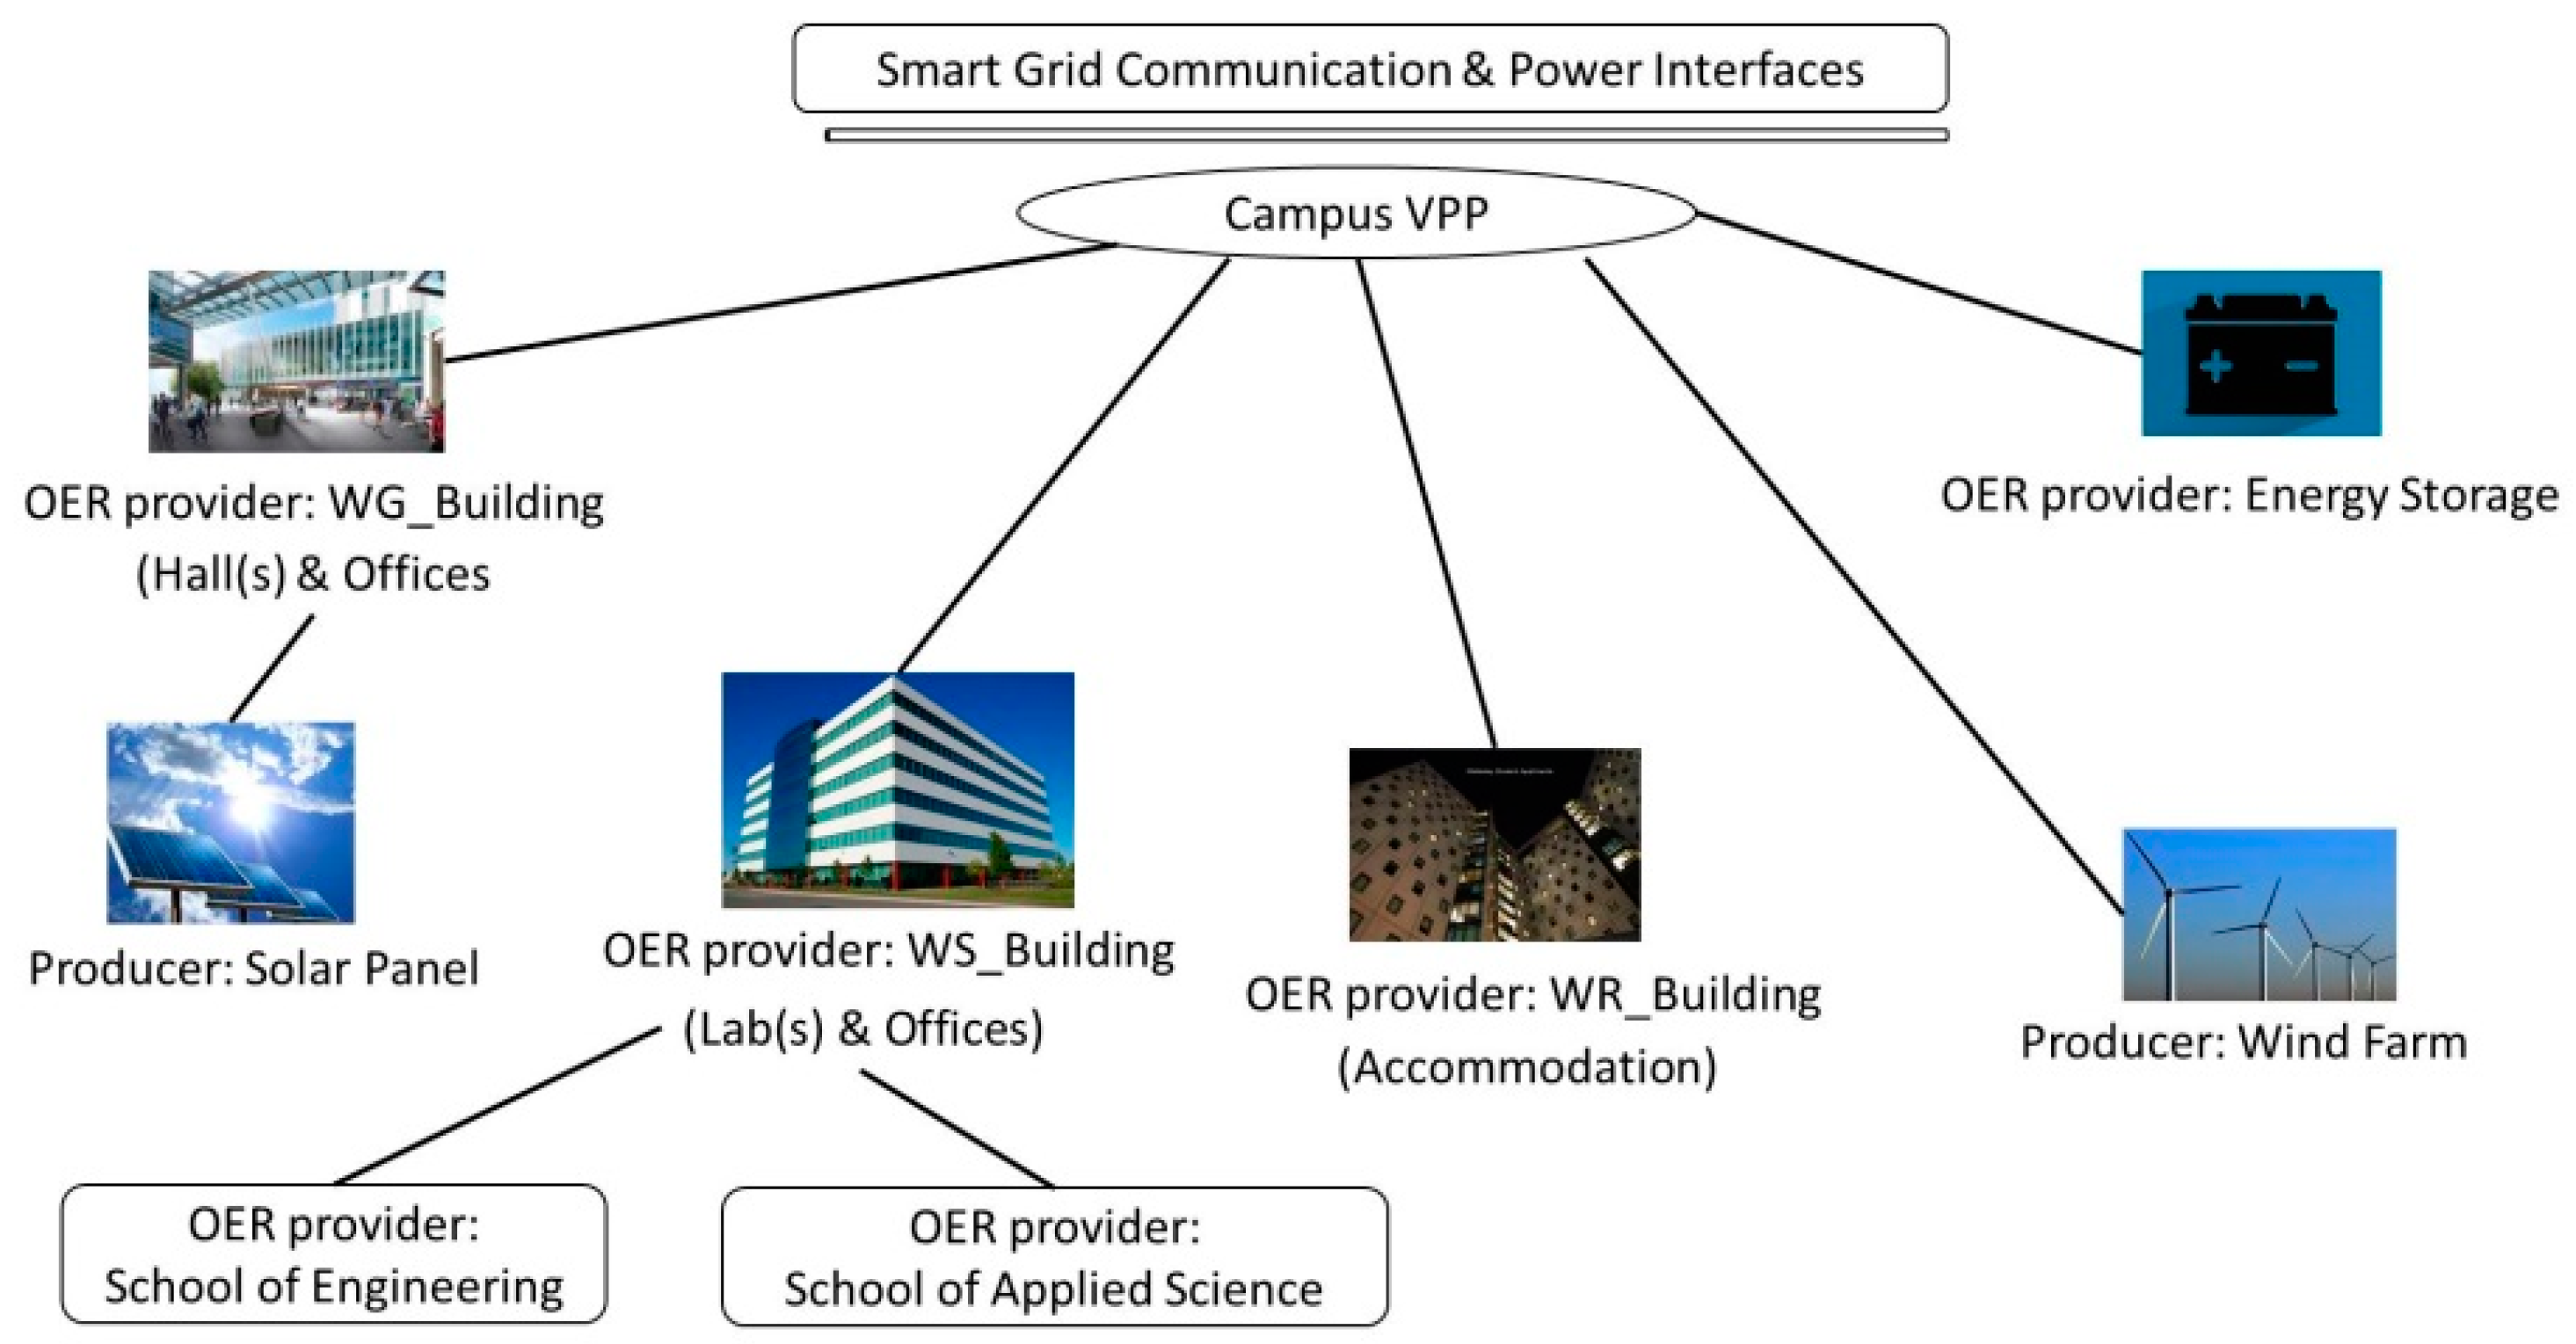 virtual power plant diagram wiring diagramenergies free full text an event based resource managementvirtual power plant diagram 18